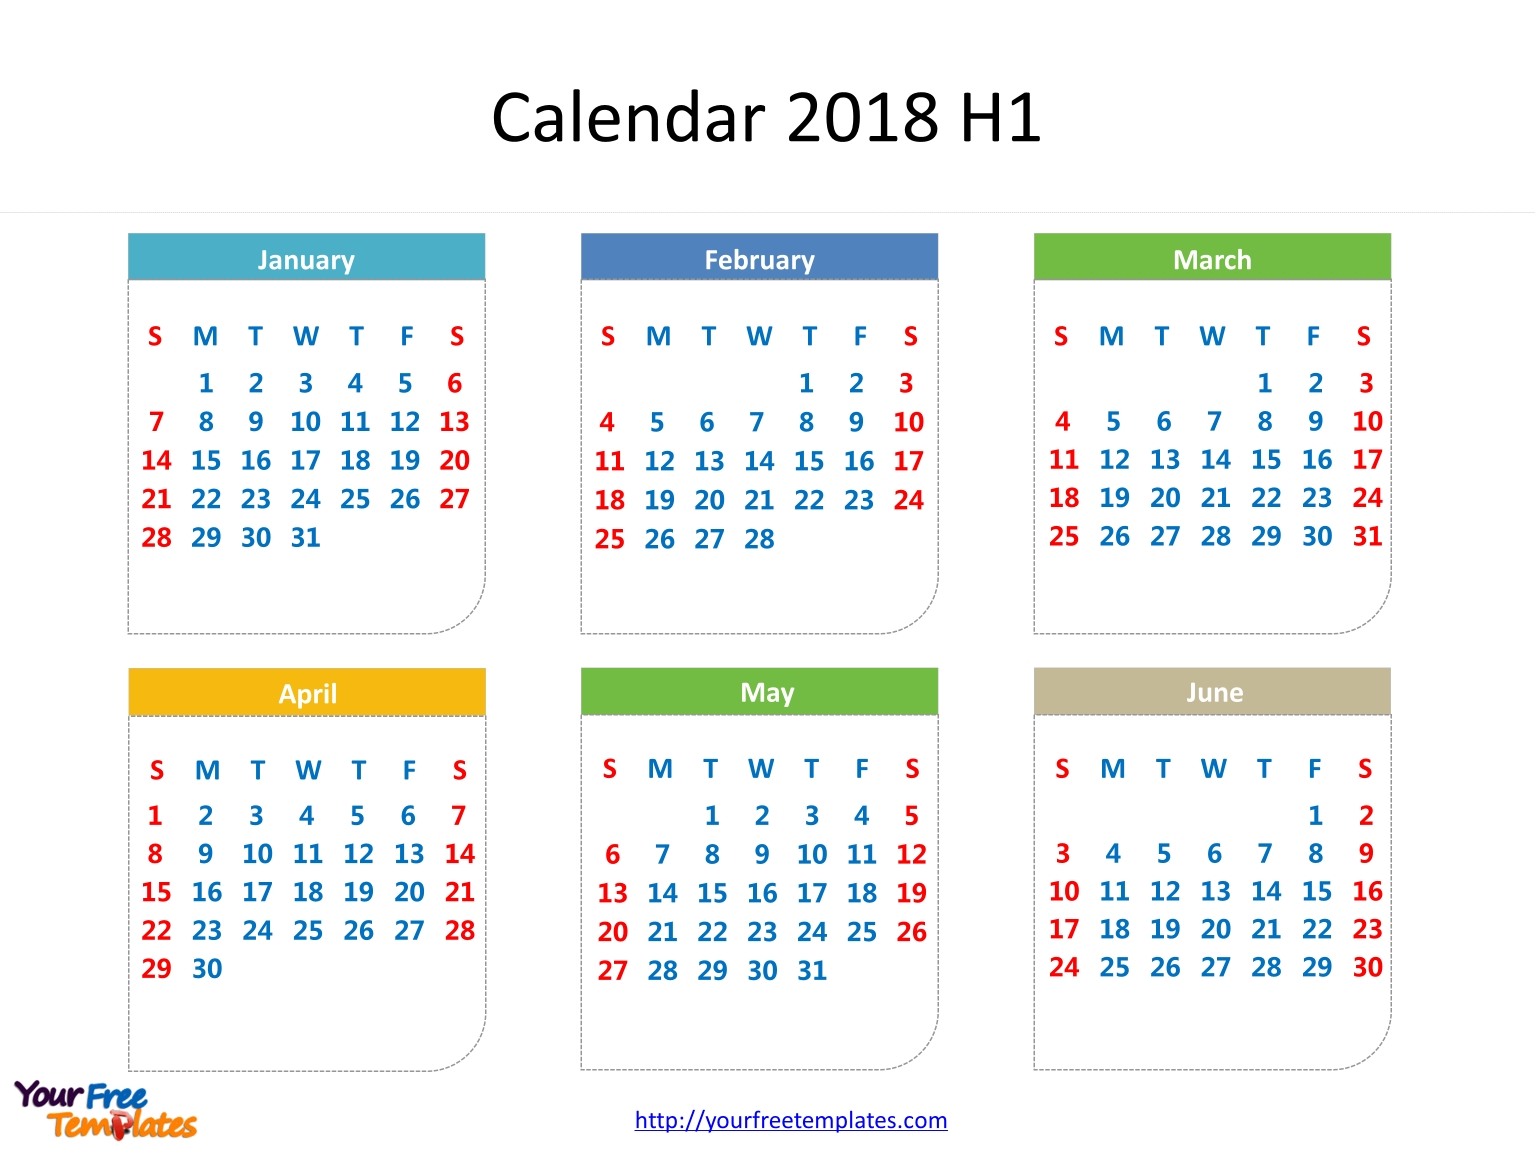 Printable Calendar 2018 - Free Powerpoint Templates